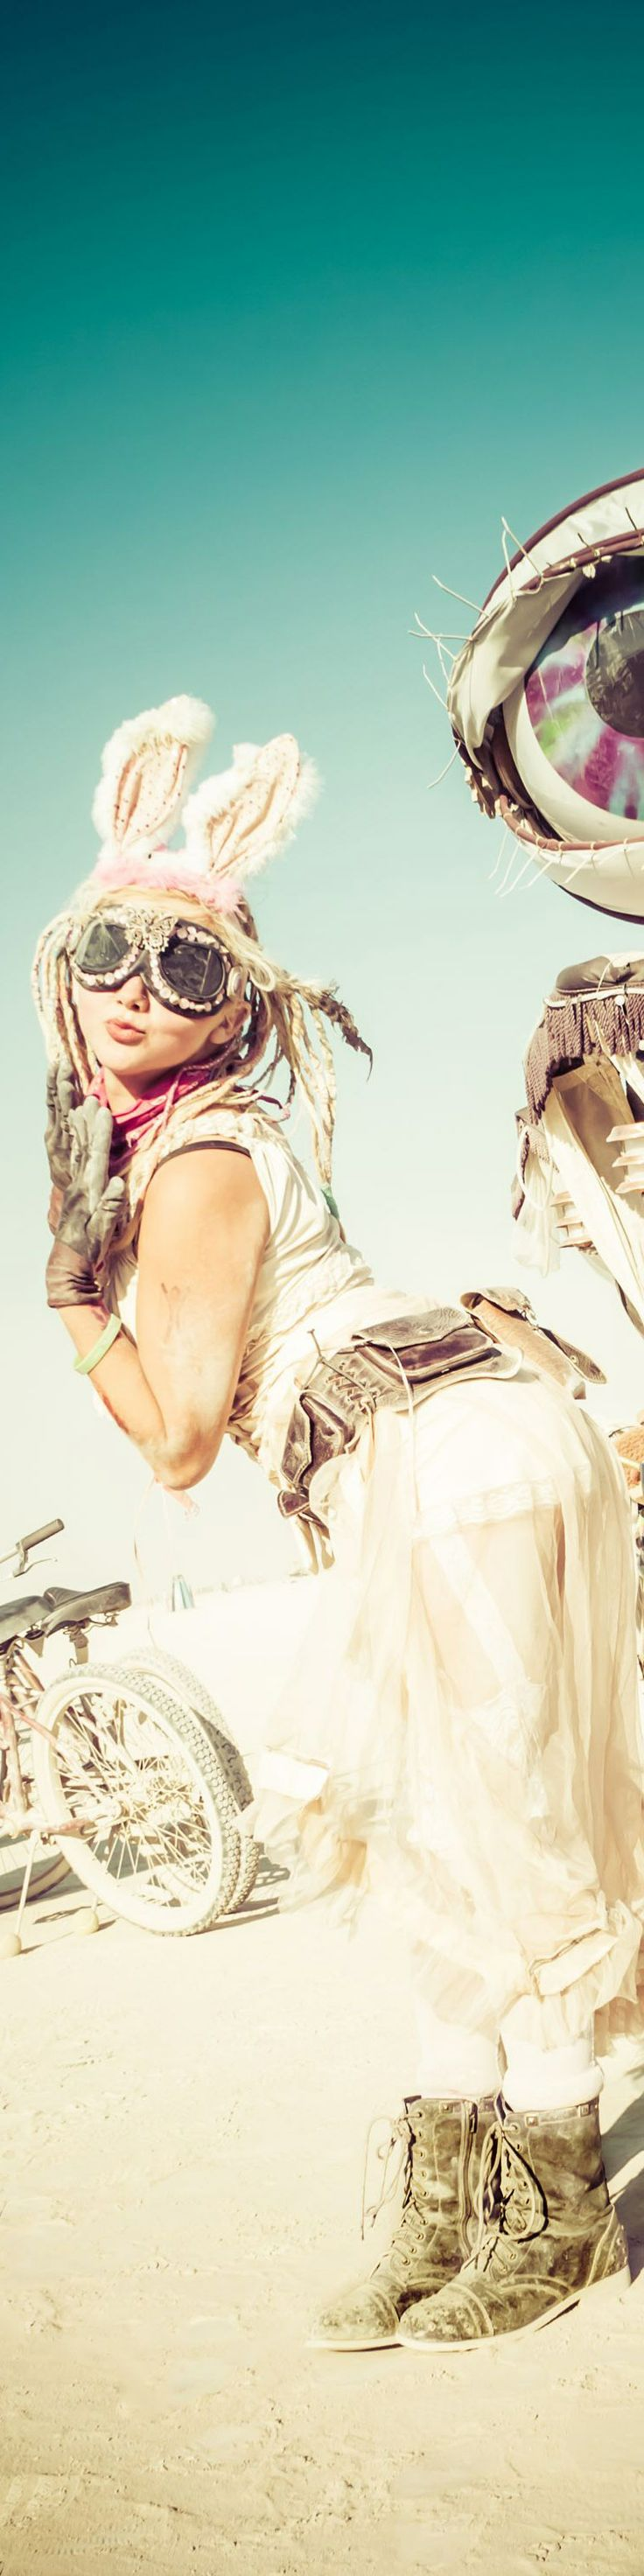 THE LINK IS JUST PHOTOG STUFF, BUT I LOVE THIS PIC, REMINDS ME OF TANK GIRL!